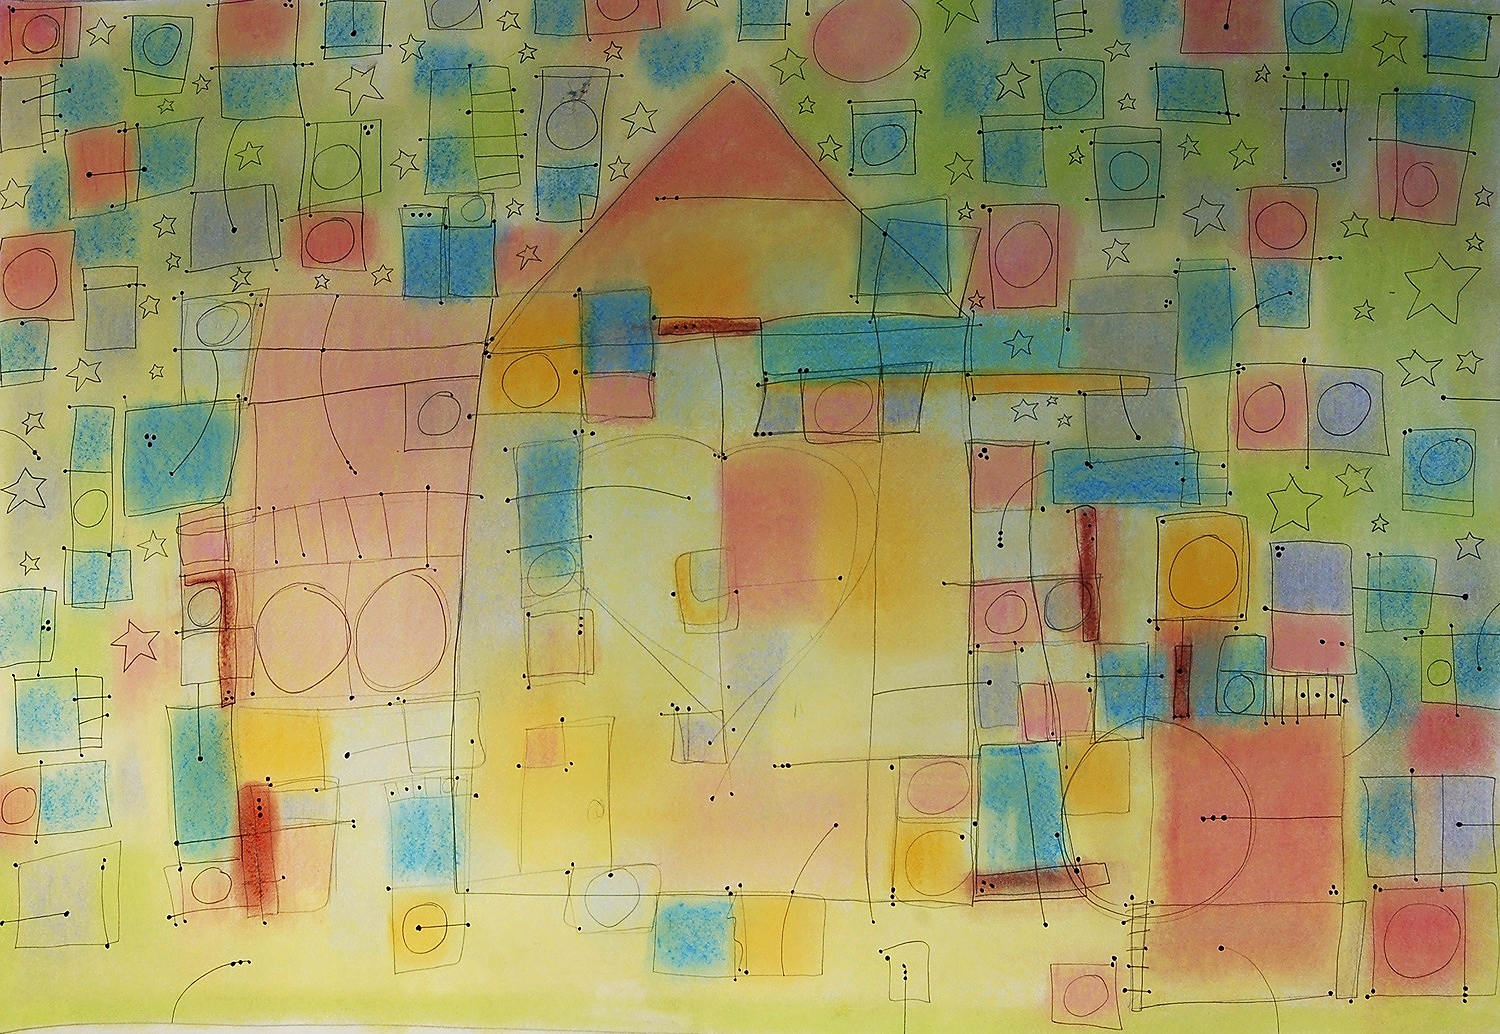 """village  2010 Pastel, pencil and ink on paper. 28¾"""" x 22¾"""""""